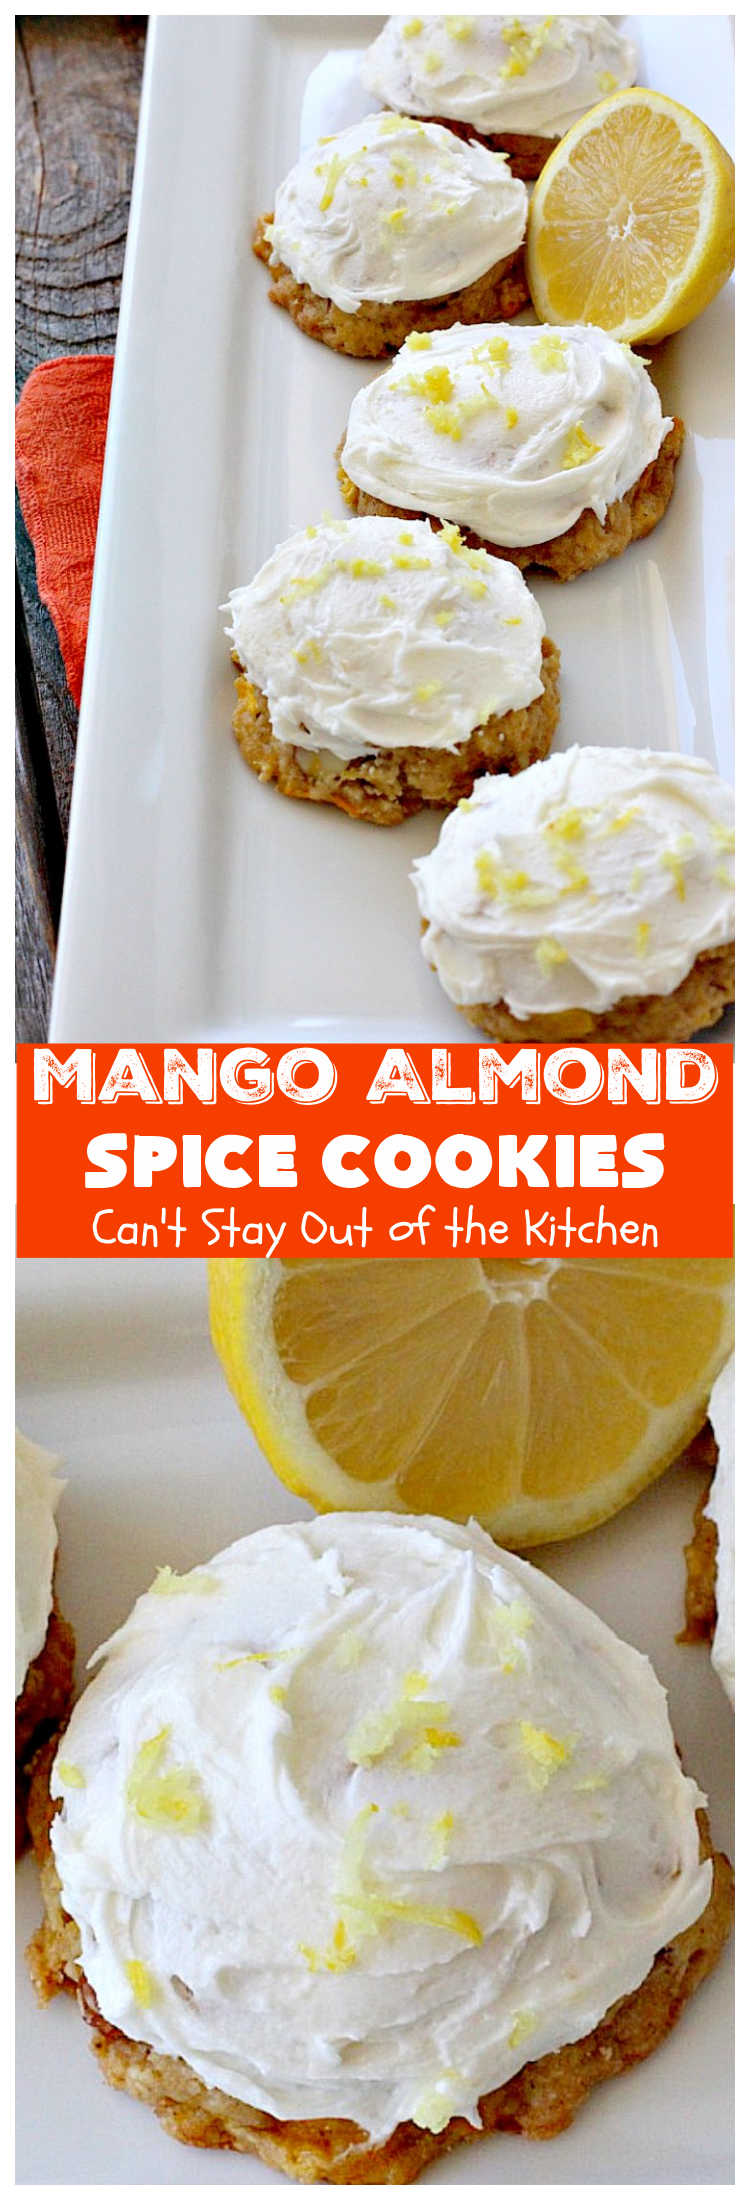 Mango Almond Spice Cookies   Can't Stay Out of the Kitchen   these amazing #cookies are heavenly. The #Lemon Buttercream Frosting is divine. Perfect for summer holidays, backyard barbecues & potlucks. Will certainly cure any sweet tooth craving! #dessert #mangos #almonds #MangoDessert #MangoAlmondSpiceCookies